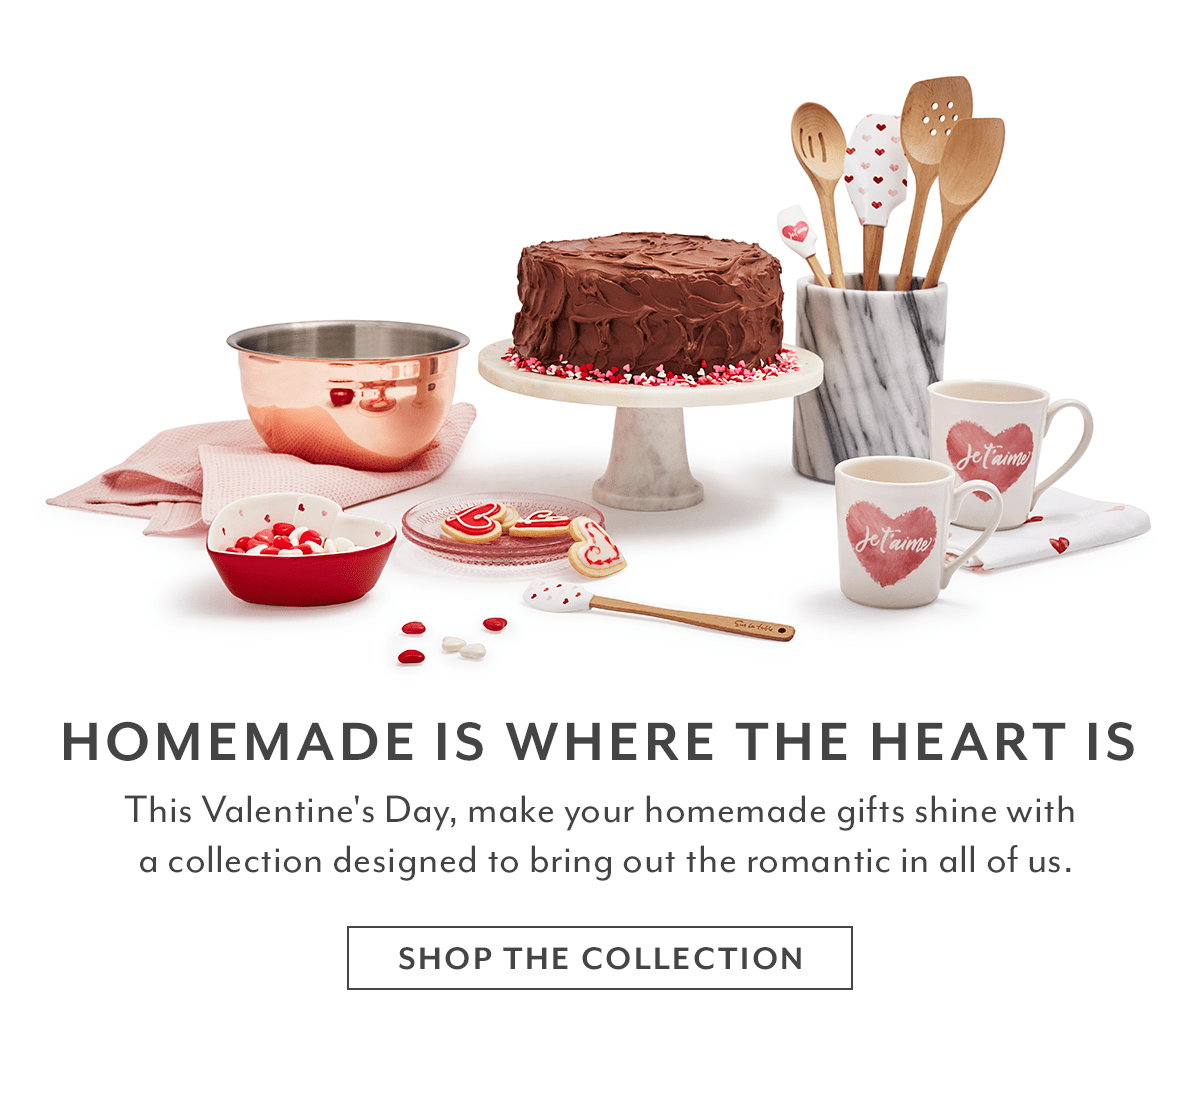 Homemade Is Where the Heart Is